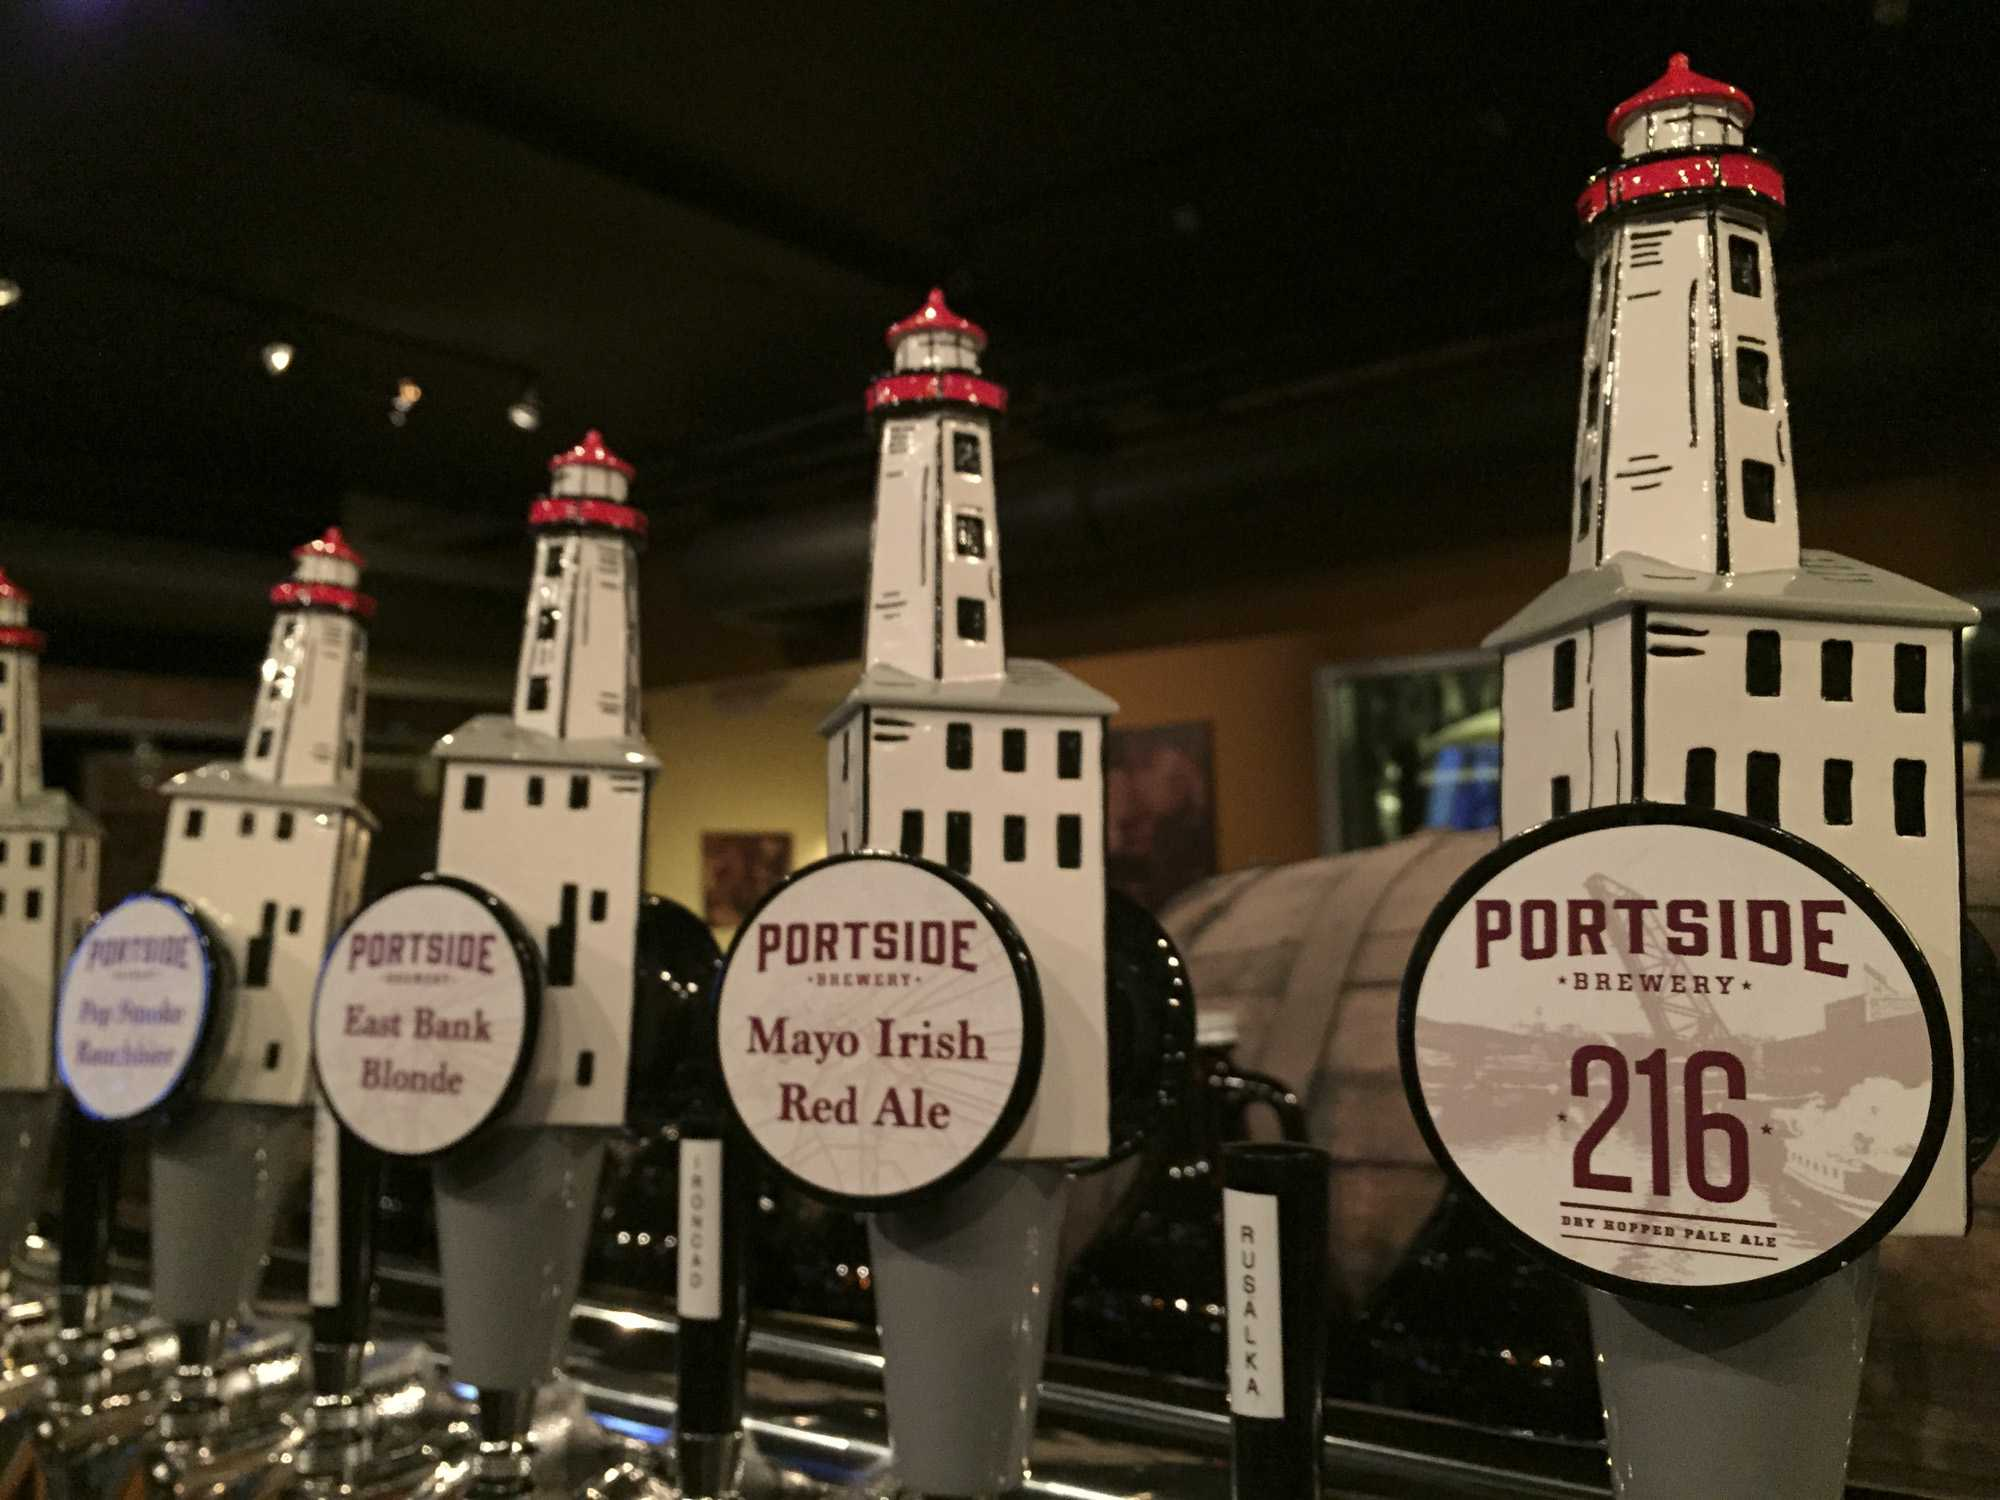 Portside features a variety of beers and also a menu of mixed drinks, combining unlikely flavors into unique cocktails.